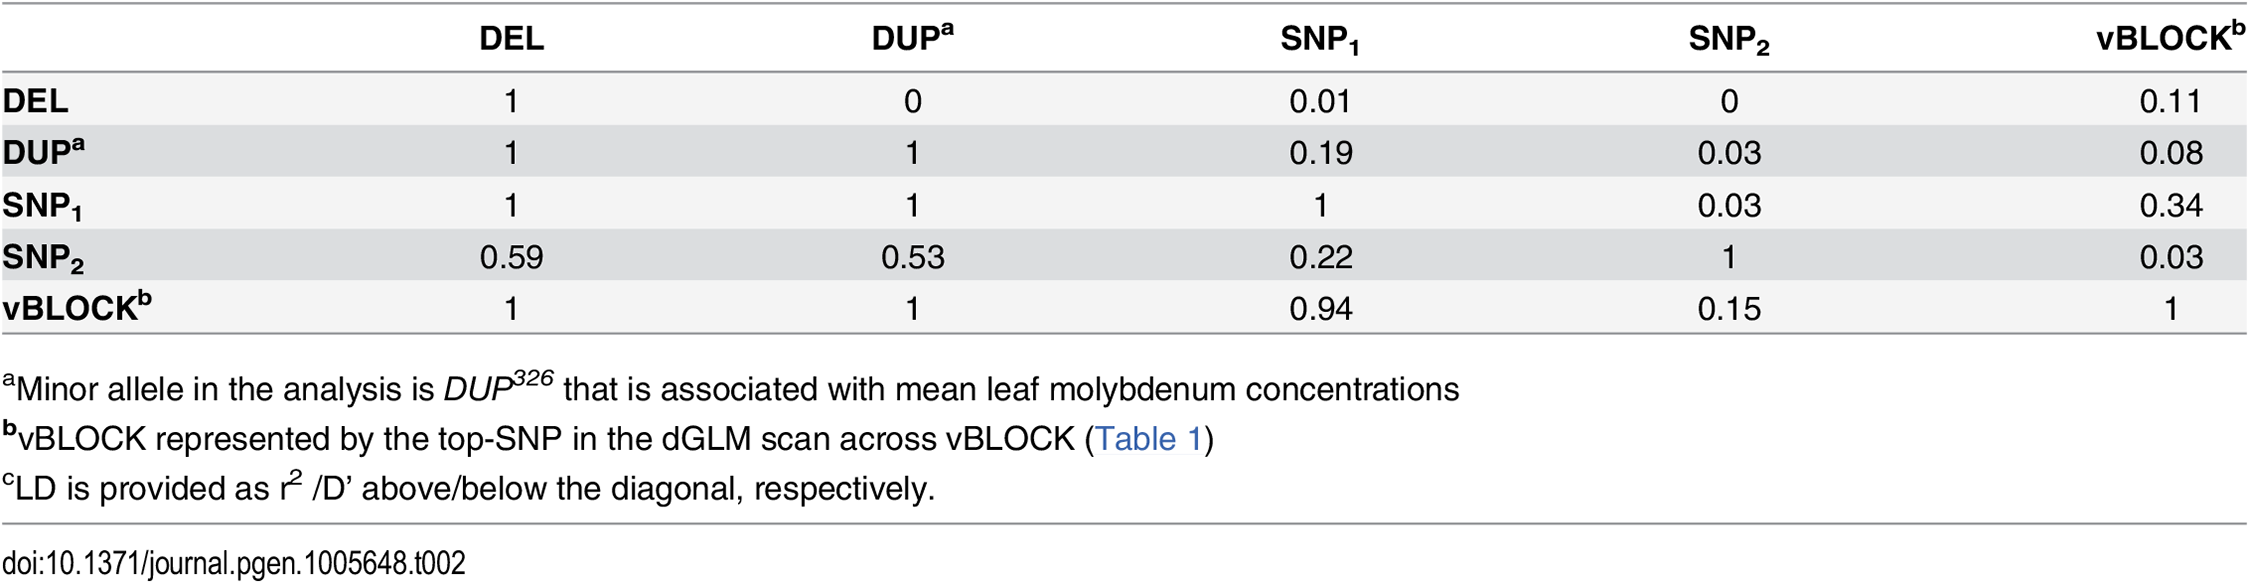 LD<em class=&quot;ref&quot;><sup>c</sup></em> between the loci altering mean leaf molybdenum concentrations.